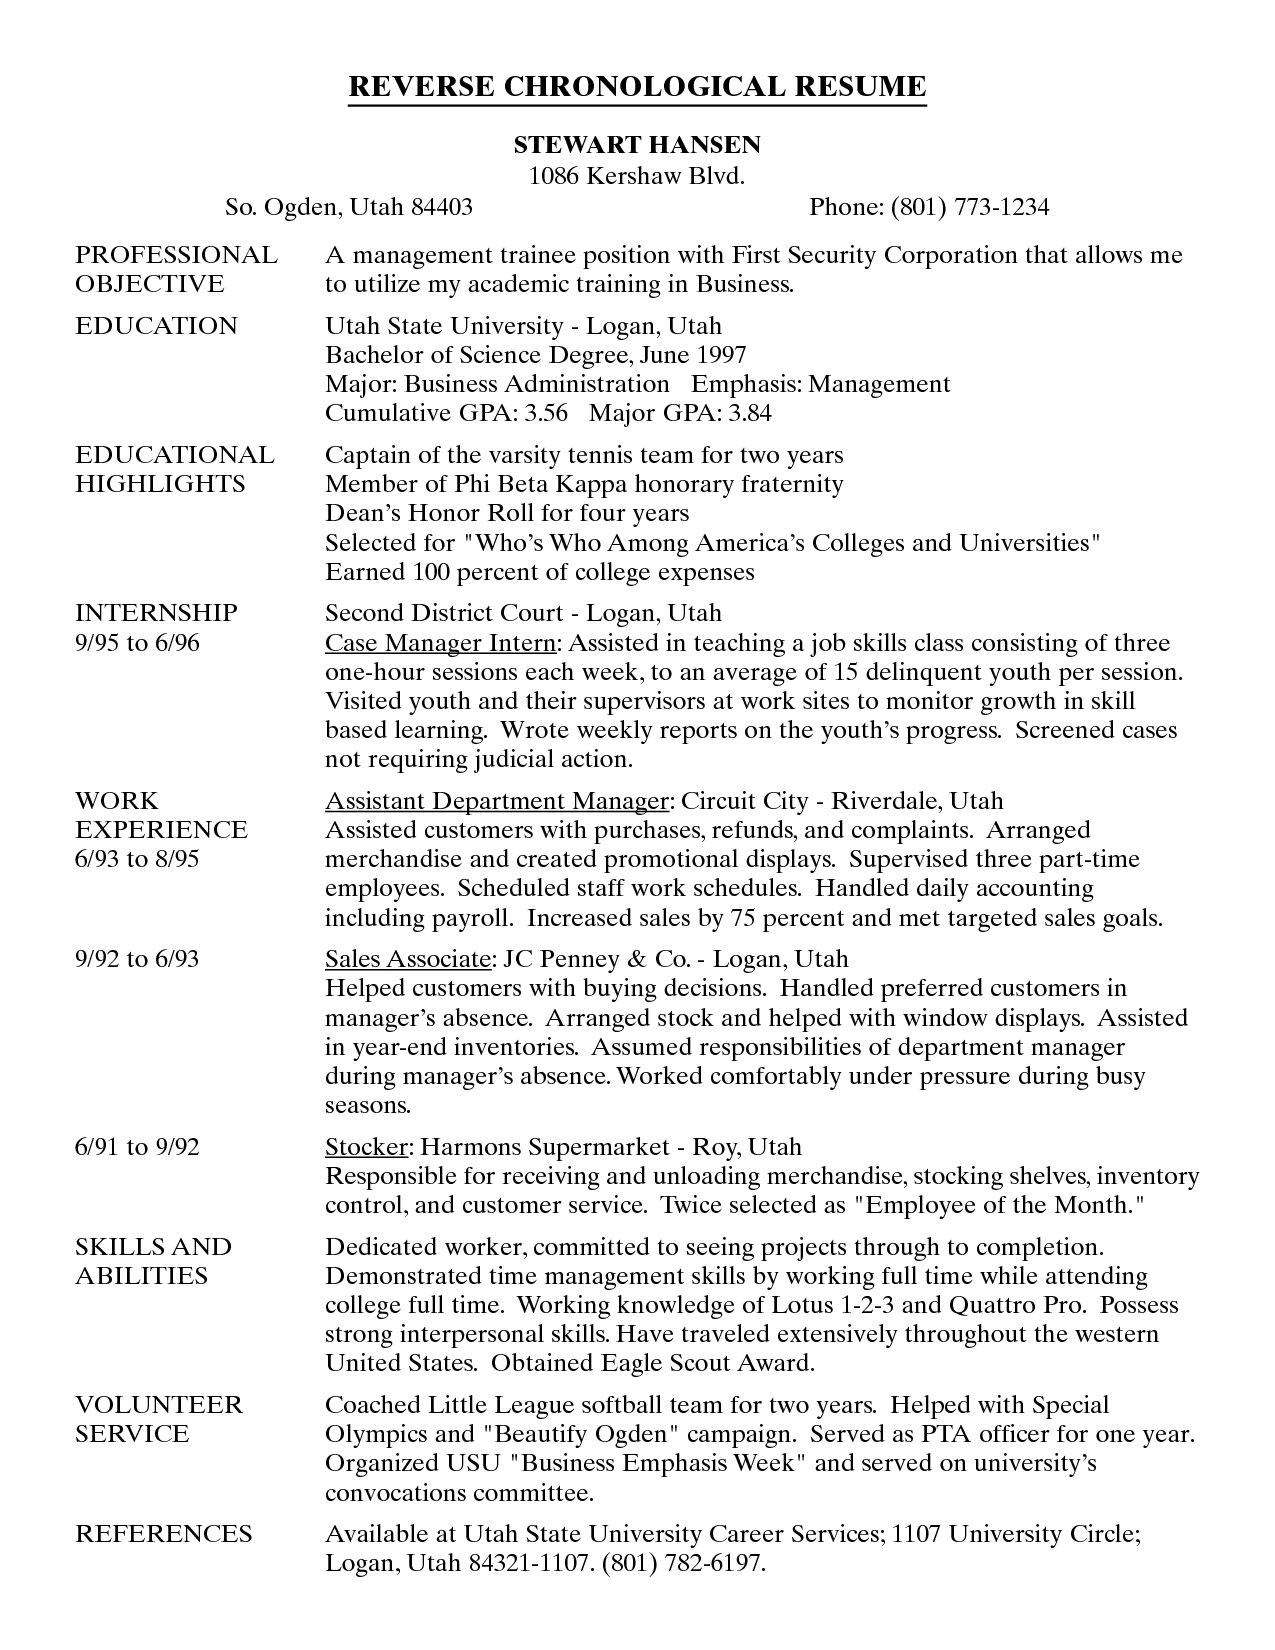 Chronological Order Resume Example Dc0364f86 The Reverse Chronological  Resume Example